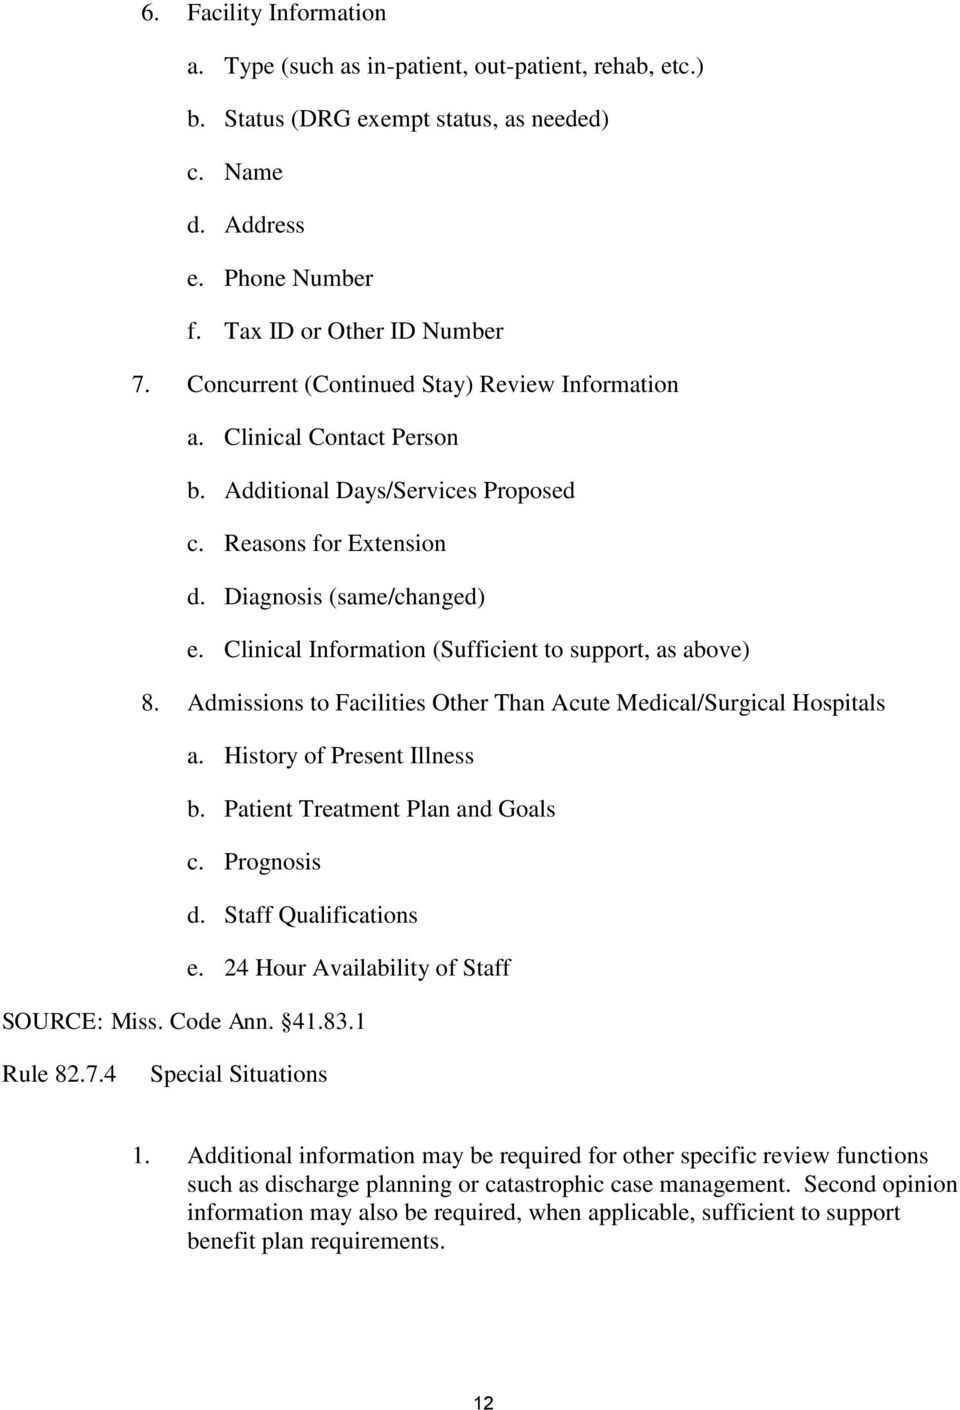 Clinical Information (Sufficient to support, as above) 8. Admissions to Facilities Other Than Acute Medical/Surgical Hospitals a. History of Present Illness b. Patient Treatment Plan and Goals c.